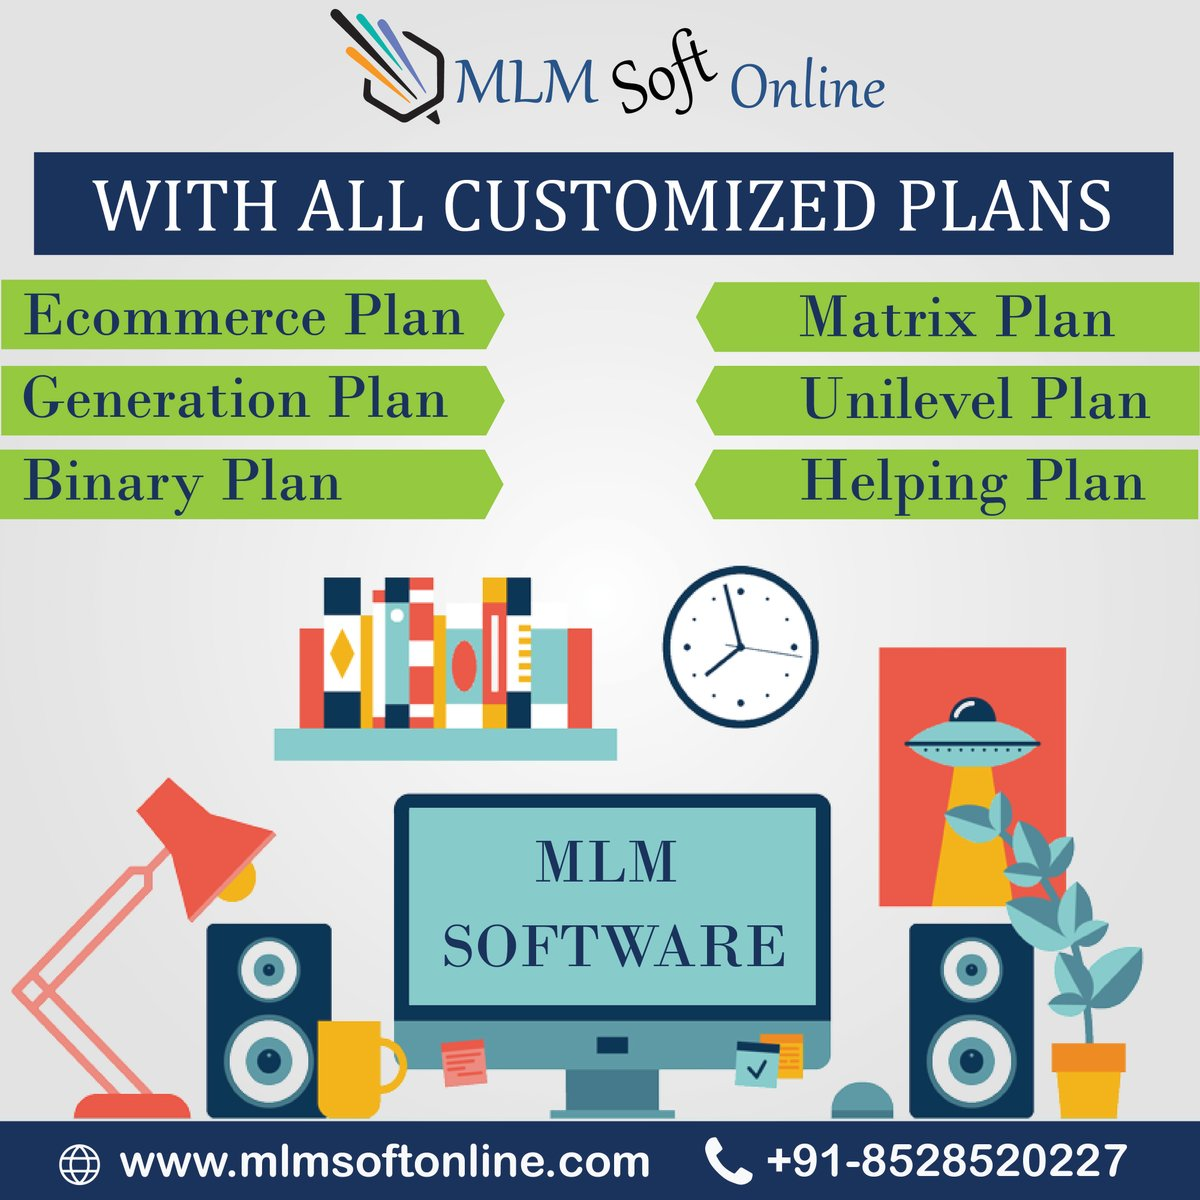 We Are Serve Best MLM Customized Plans With Software,Start Your MLM  Business With Us And Start Earning.... For More Info Visit:- https://bit.ly/326rdH3  #mlmsoftware #marketing #software pic.twitter.com/NtEXXfdhH4